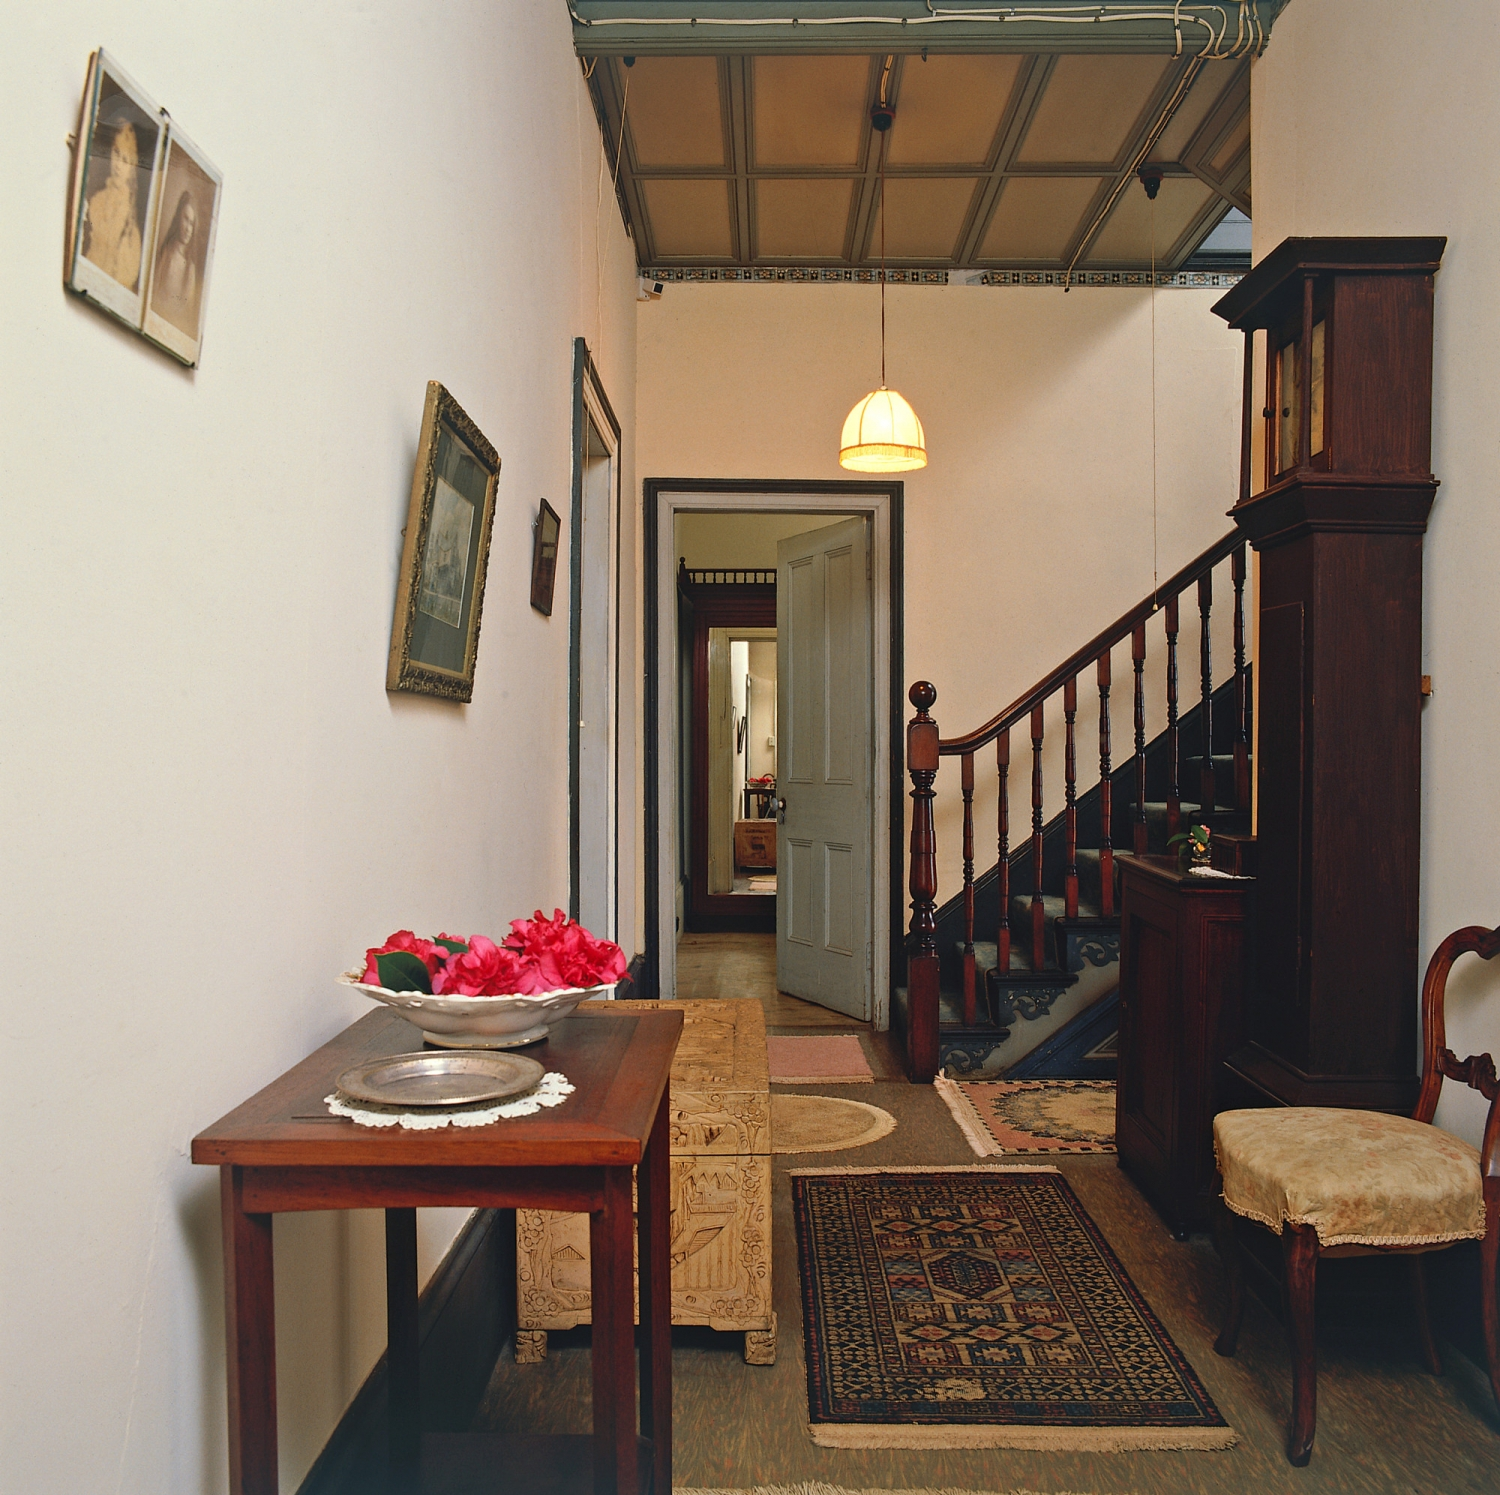 Hallway with furniture and clock.